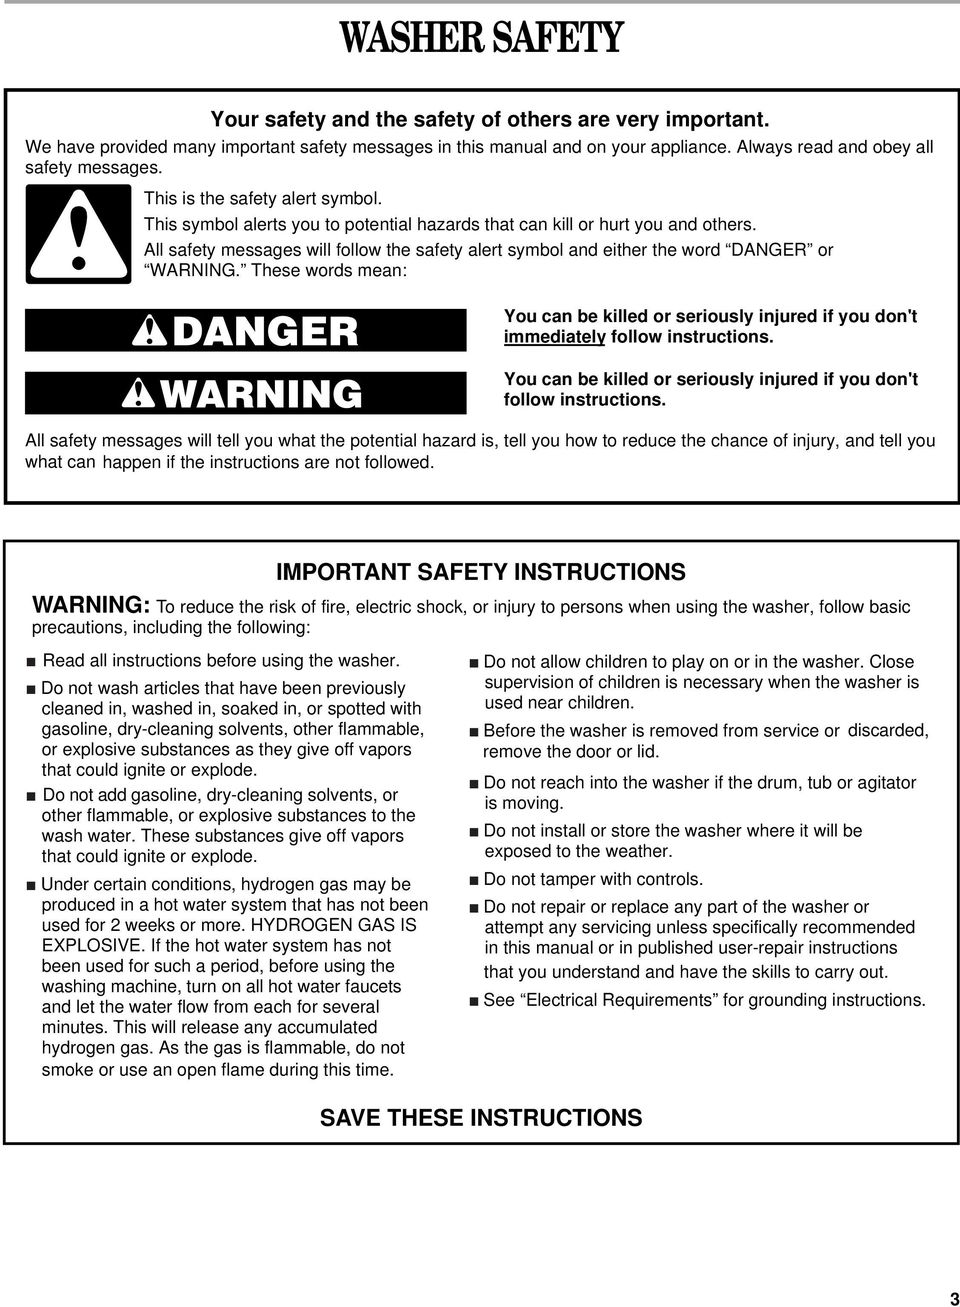 All safety messages will follow the safety alert symbol and either the word DANGER or WARNING. These words mean: You can be killed or seriously injured if you don't immediately follow instructions.